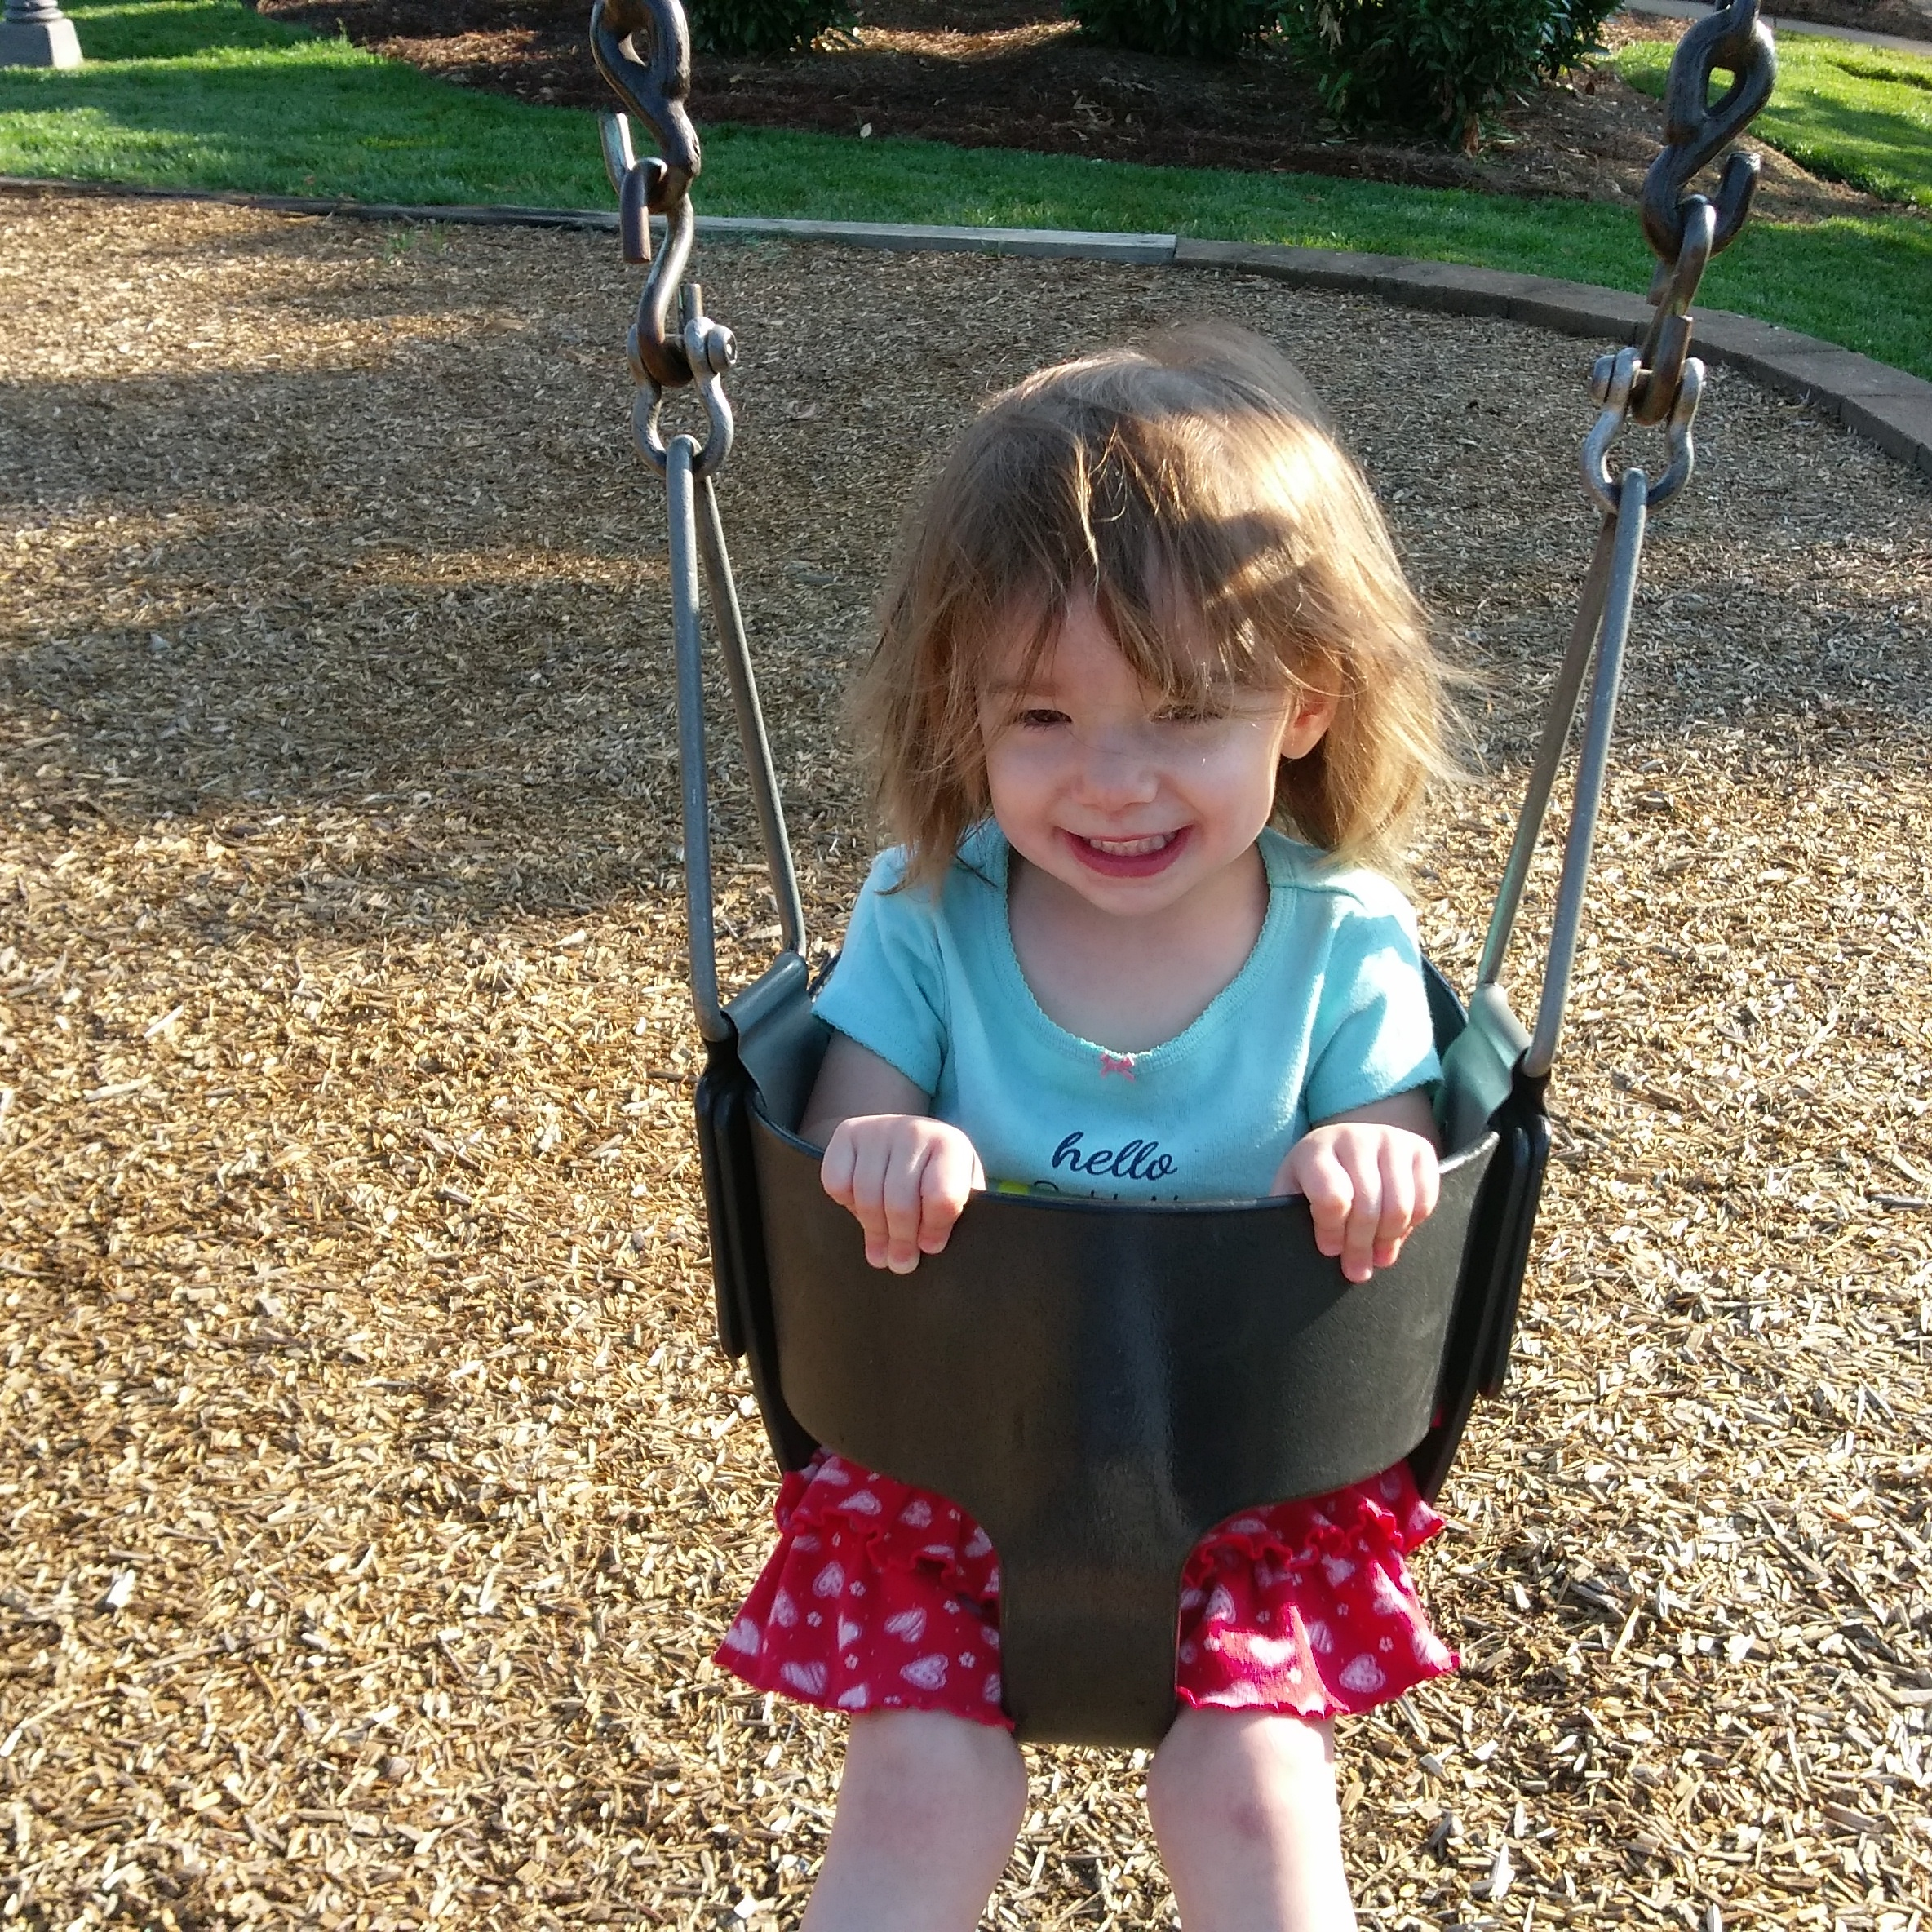 Cece getting in some early morning swinging on Friday.